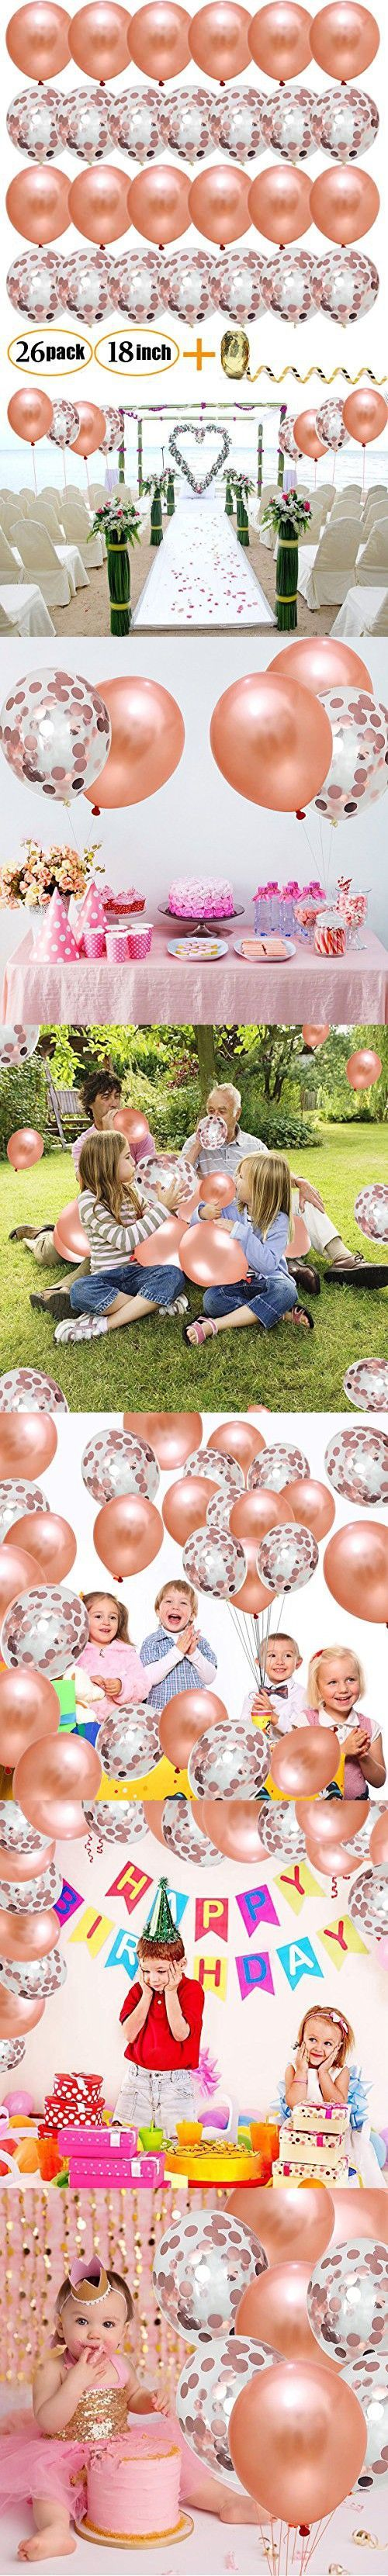 Rose Gold Confetti Balloons,TerrificCorner Balloon Decoration Pack of 26,18 Inch Latex Party Balloons for Wedding, Bridal Shower, Engagement, Birthday...